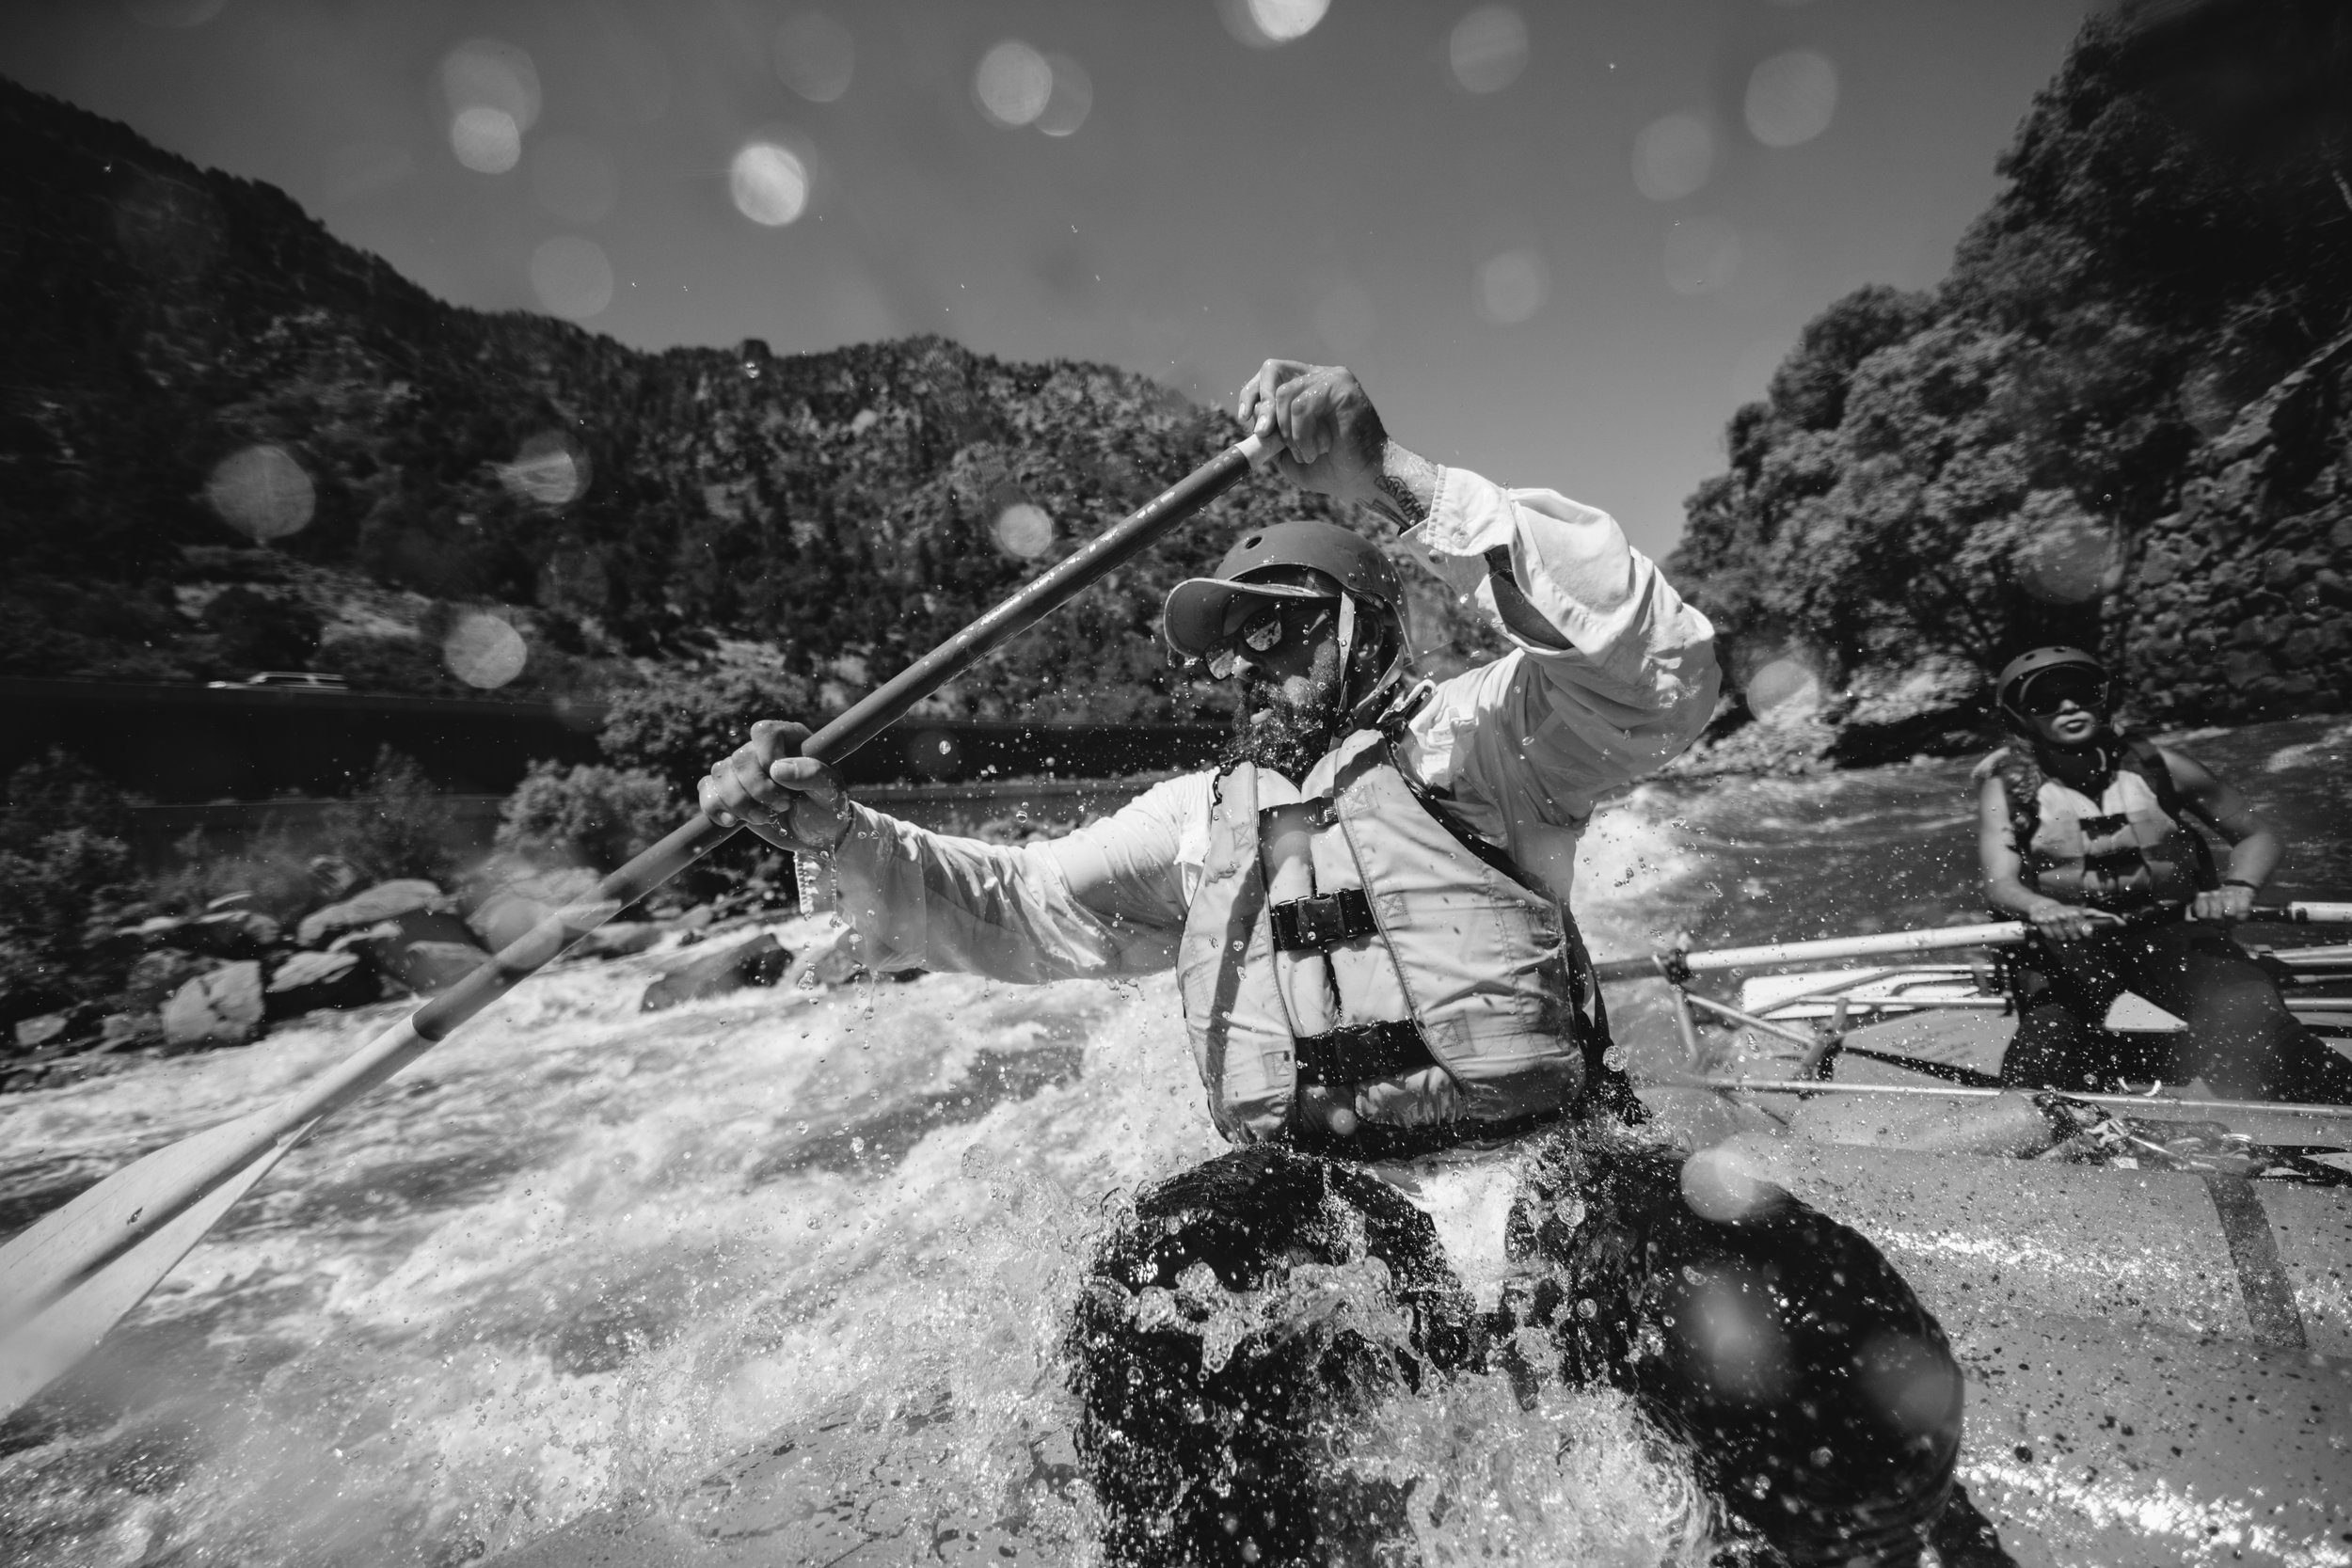 Wet times on the Shoshone section of the Colorado River in Glenwood Canyon.